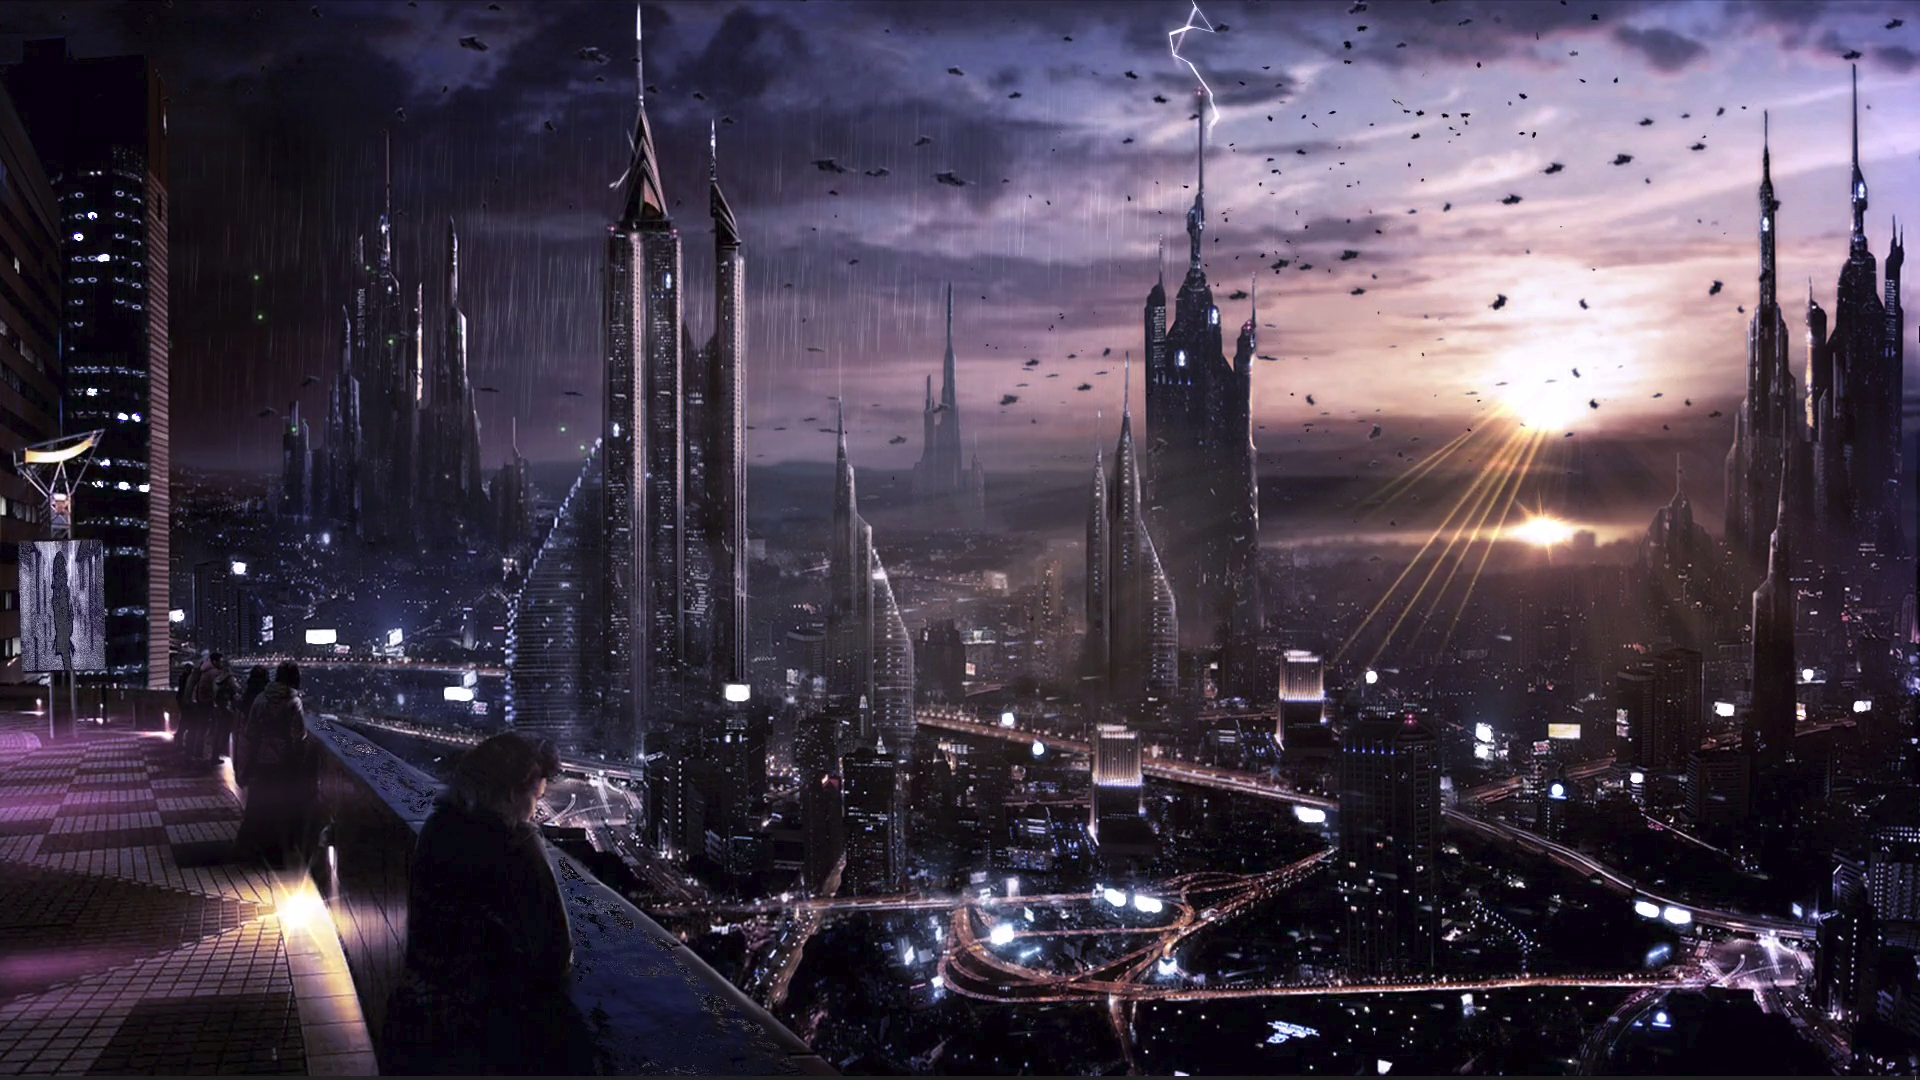 Pictures of the future city